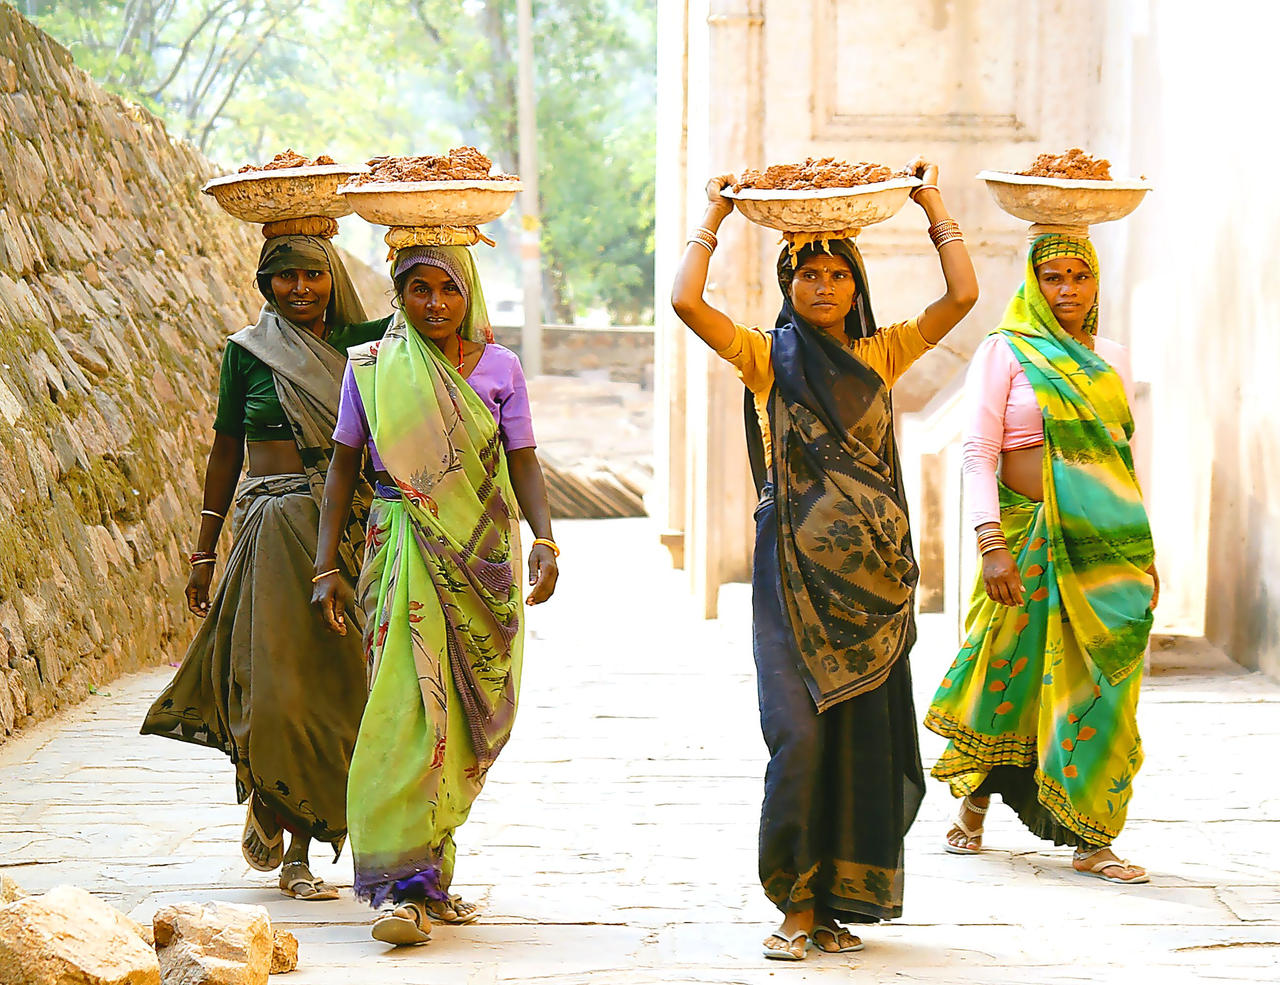 essay on working women in india Problem of working women in india essay problem of working women in india essay 168th street, west zip 10032 english spm paper.